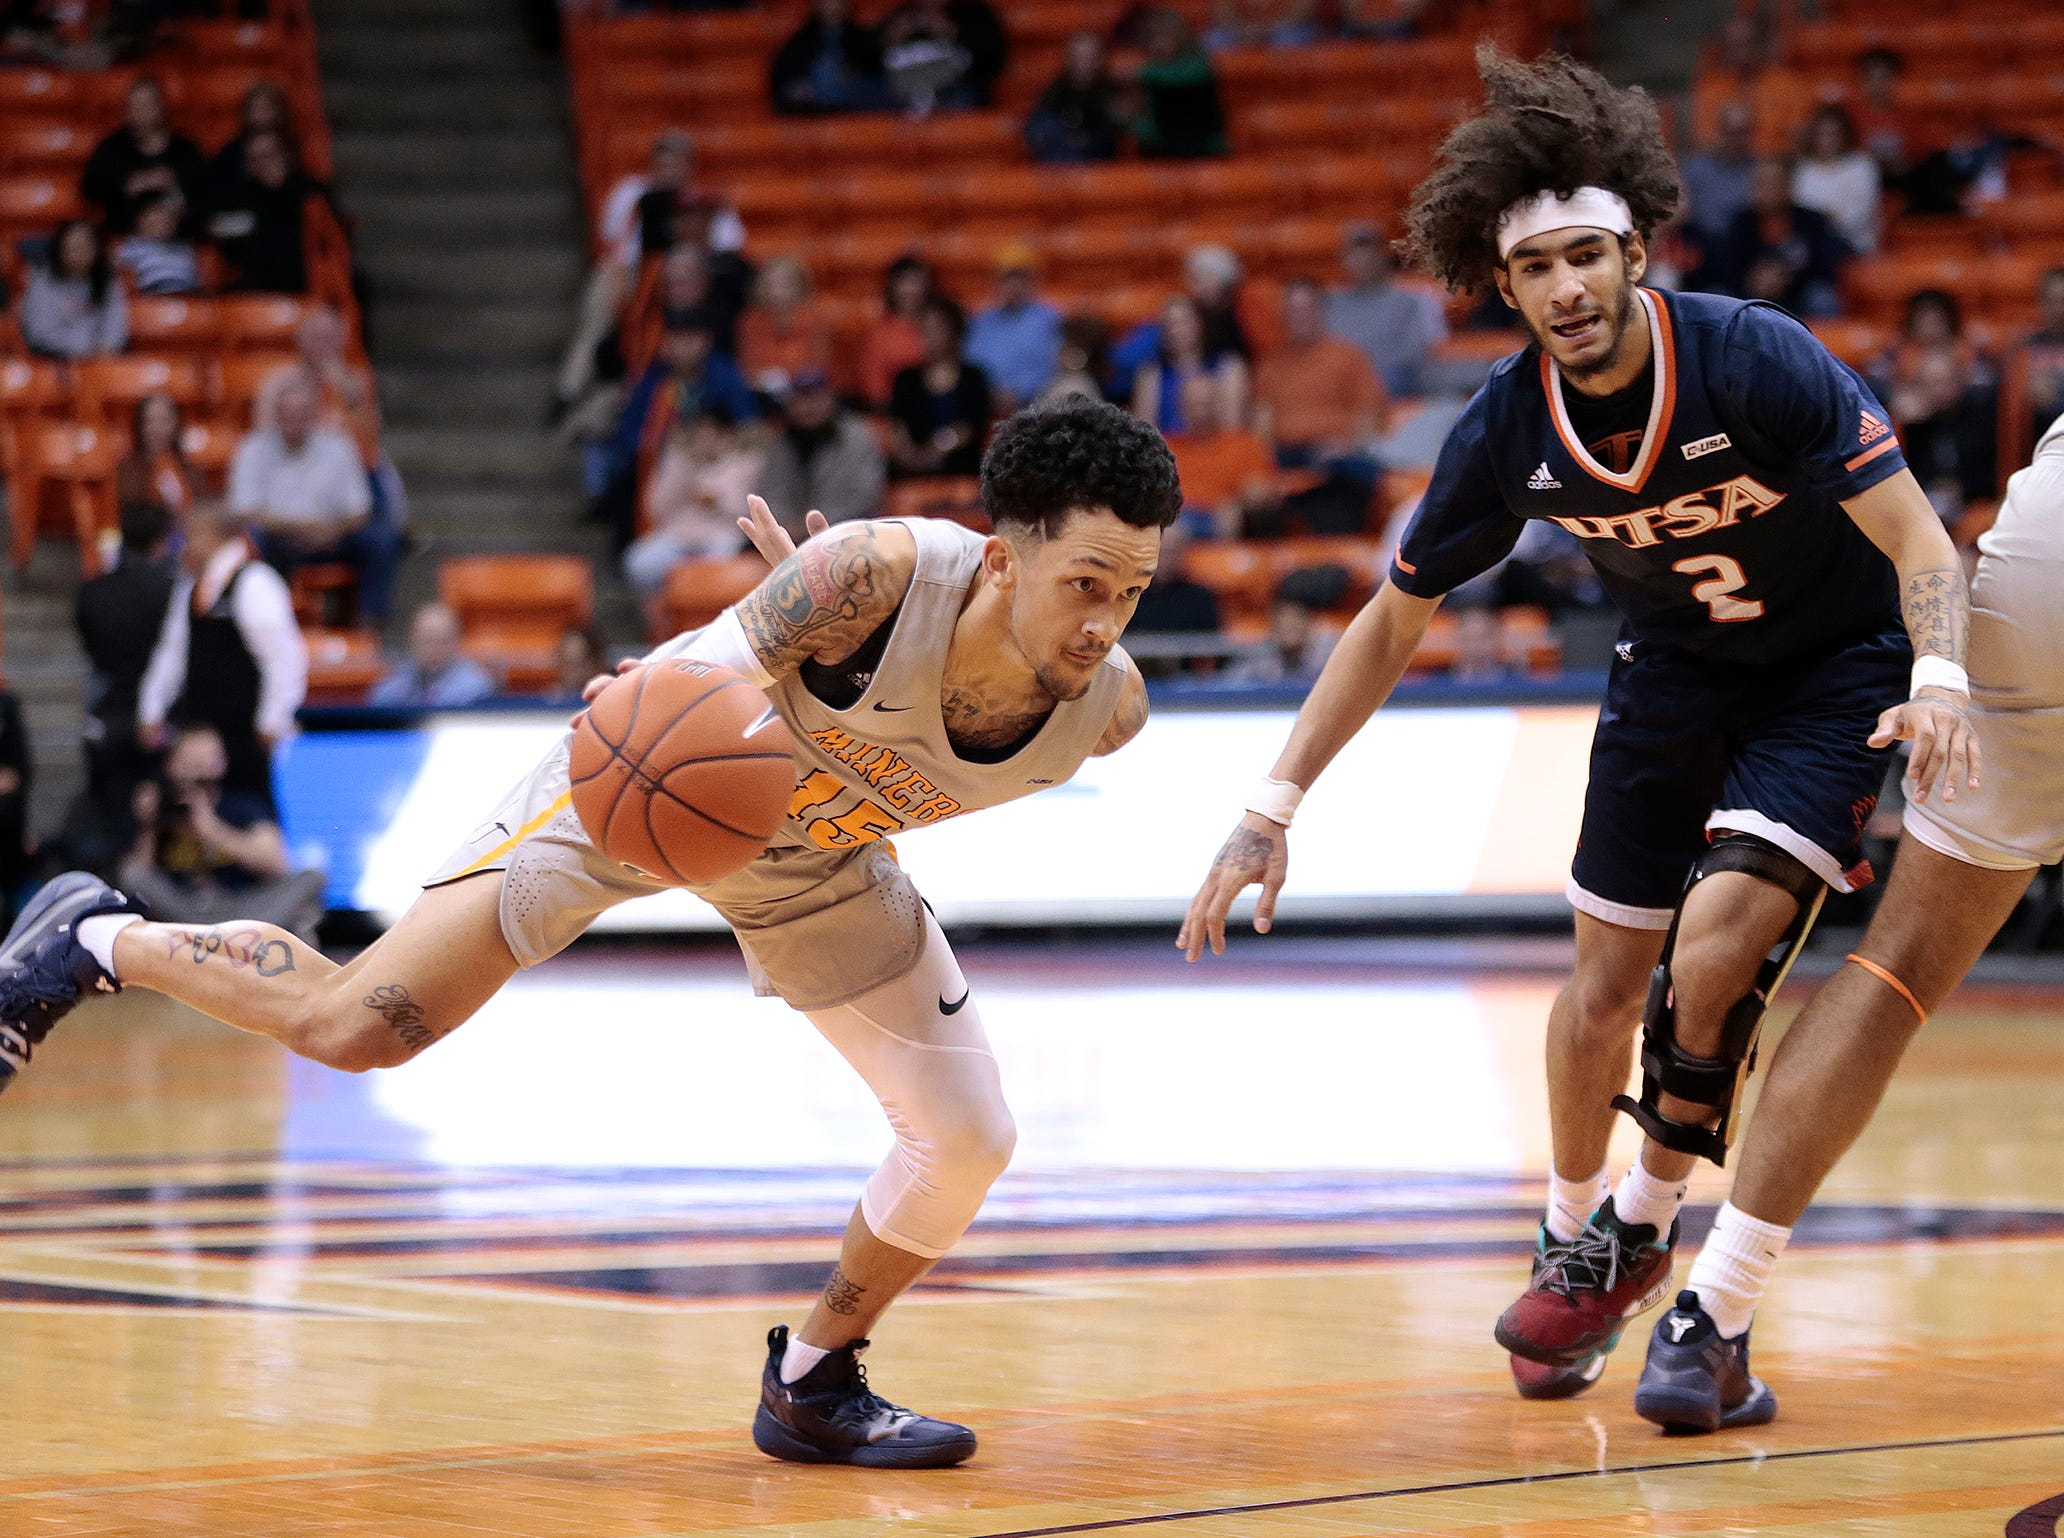 UTEP loses a close game to UTSA Saturday at the Don Haskins Center. UTEP is coming off a road loss at UTSA.